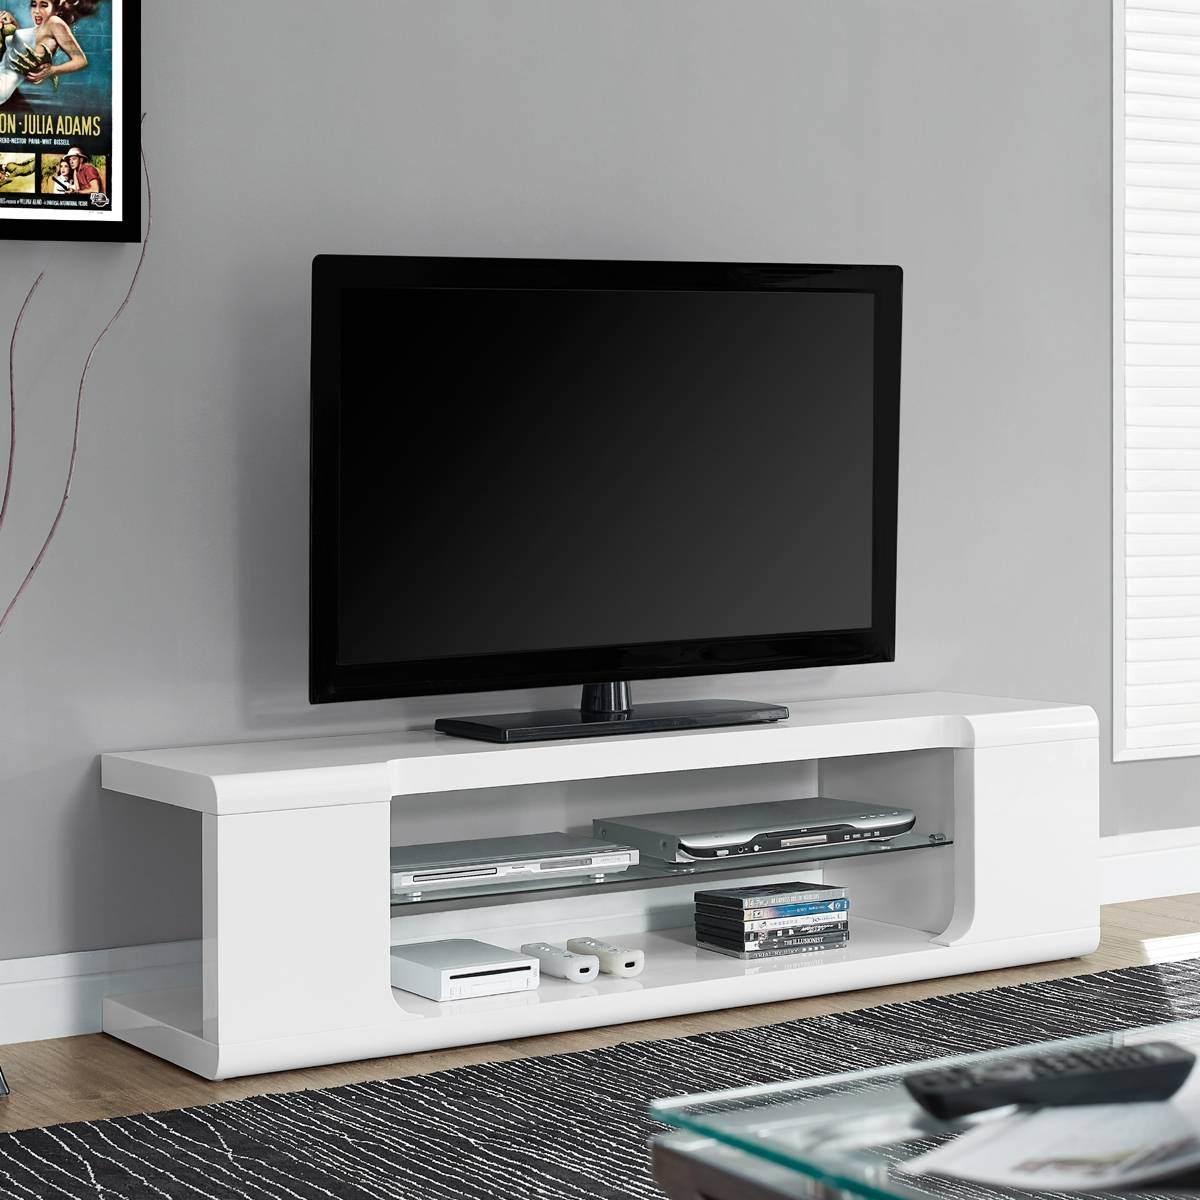 Astin Monarch Modern Tv Stand | Tv Console | White Media Console With Regard To White Modern Tv Stands (View 15 of 15)